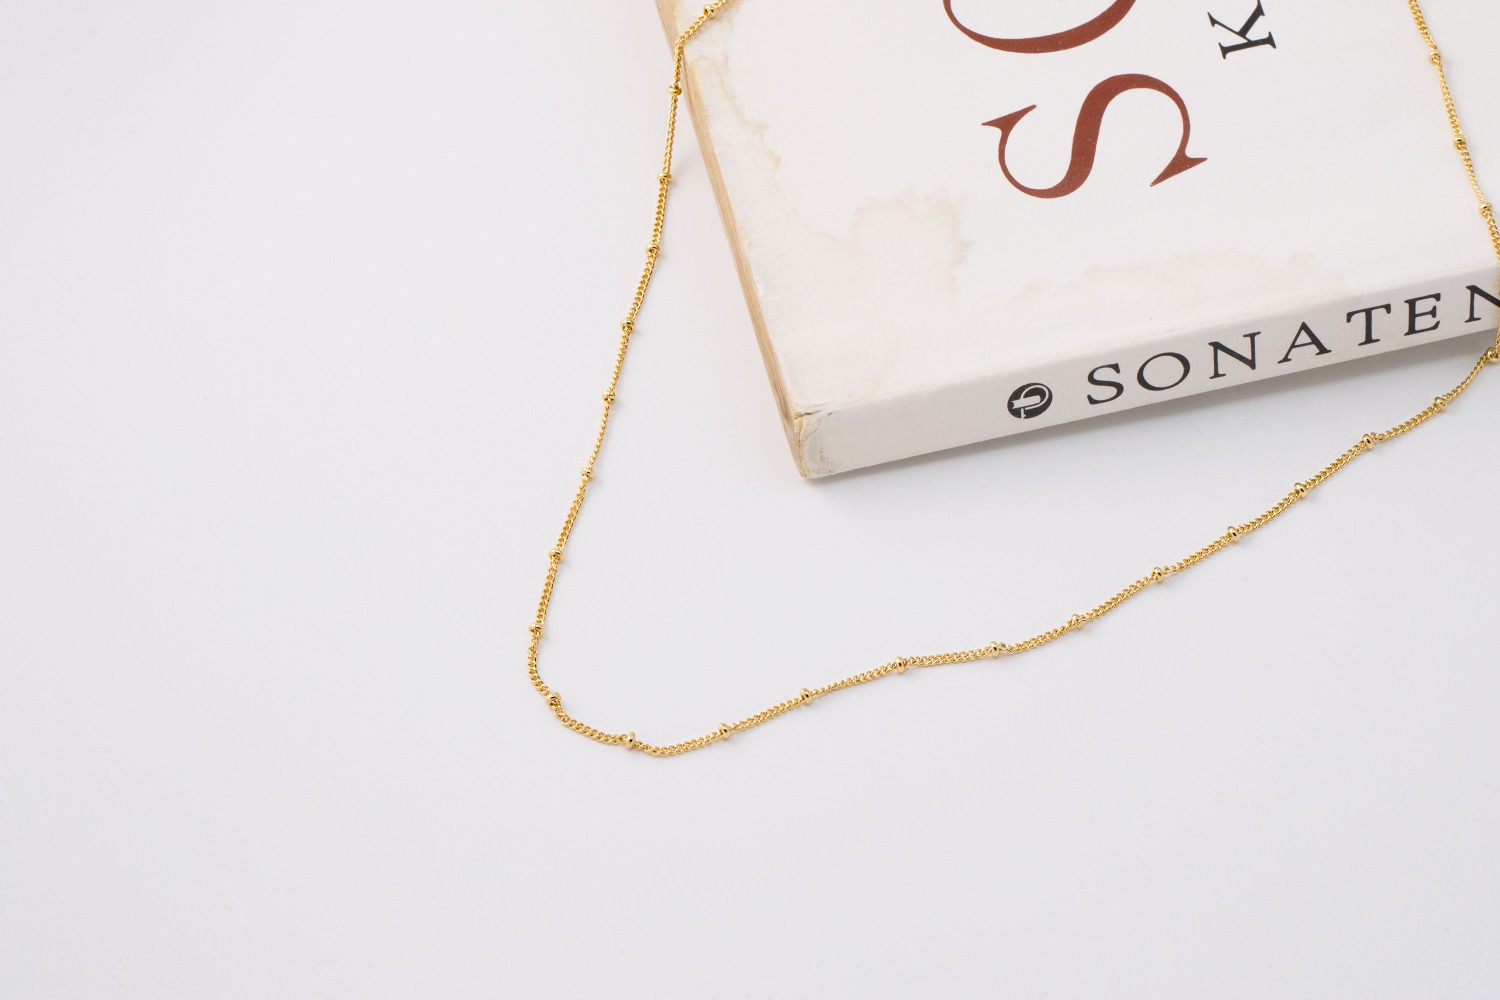 [N5113-G1] Ball cable chain necklace, 43cm, 16k gold plated red brass, Nickel free, Dainty necklace making, Pre-made chain, 1 piece